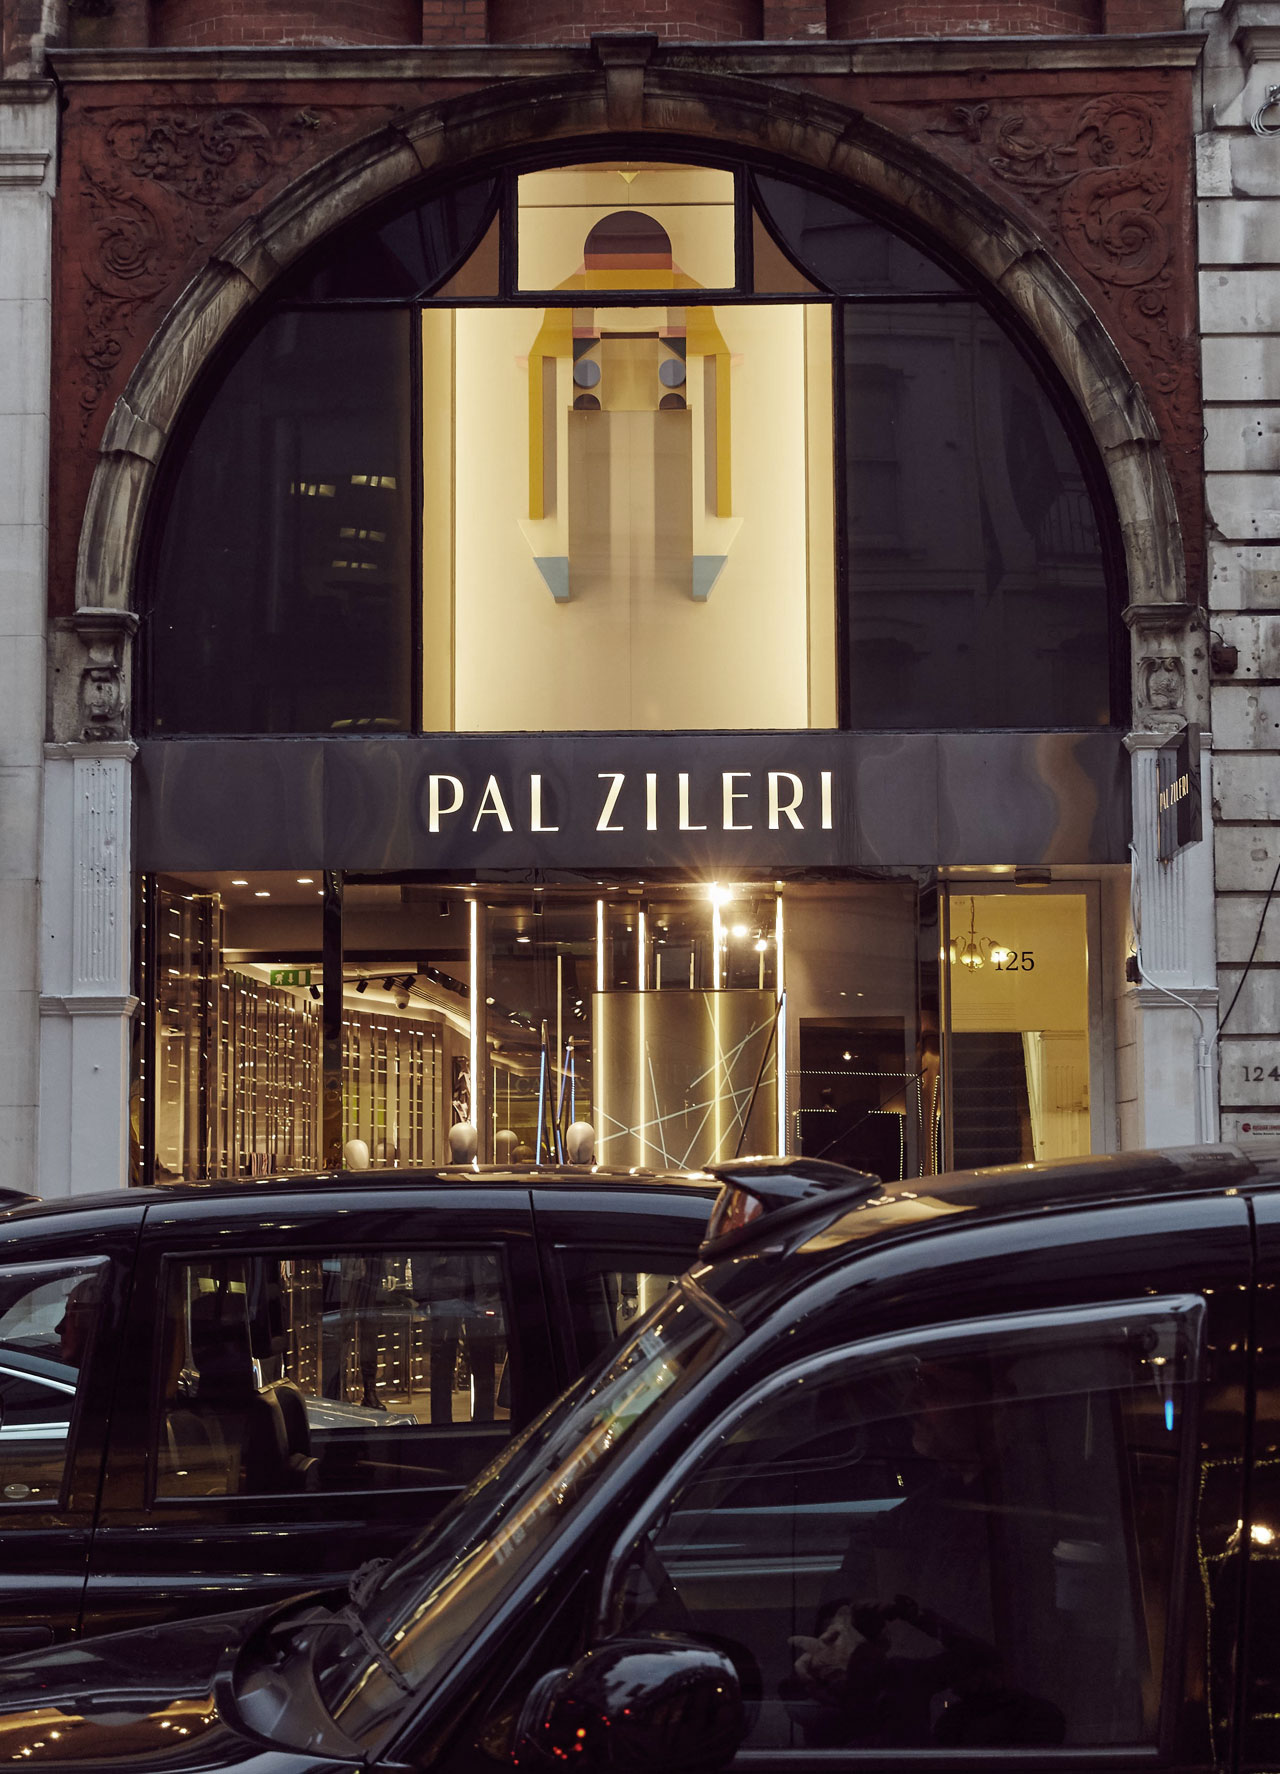 'Muon Cript' by Amba Sayal-Bennett displayed at the Pal Zileri boutique on New Bond Street in London during the Frieze Art Fair 2015. Photo © Pal Zileri.